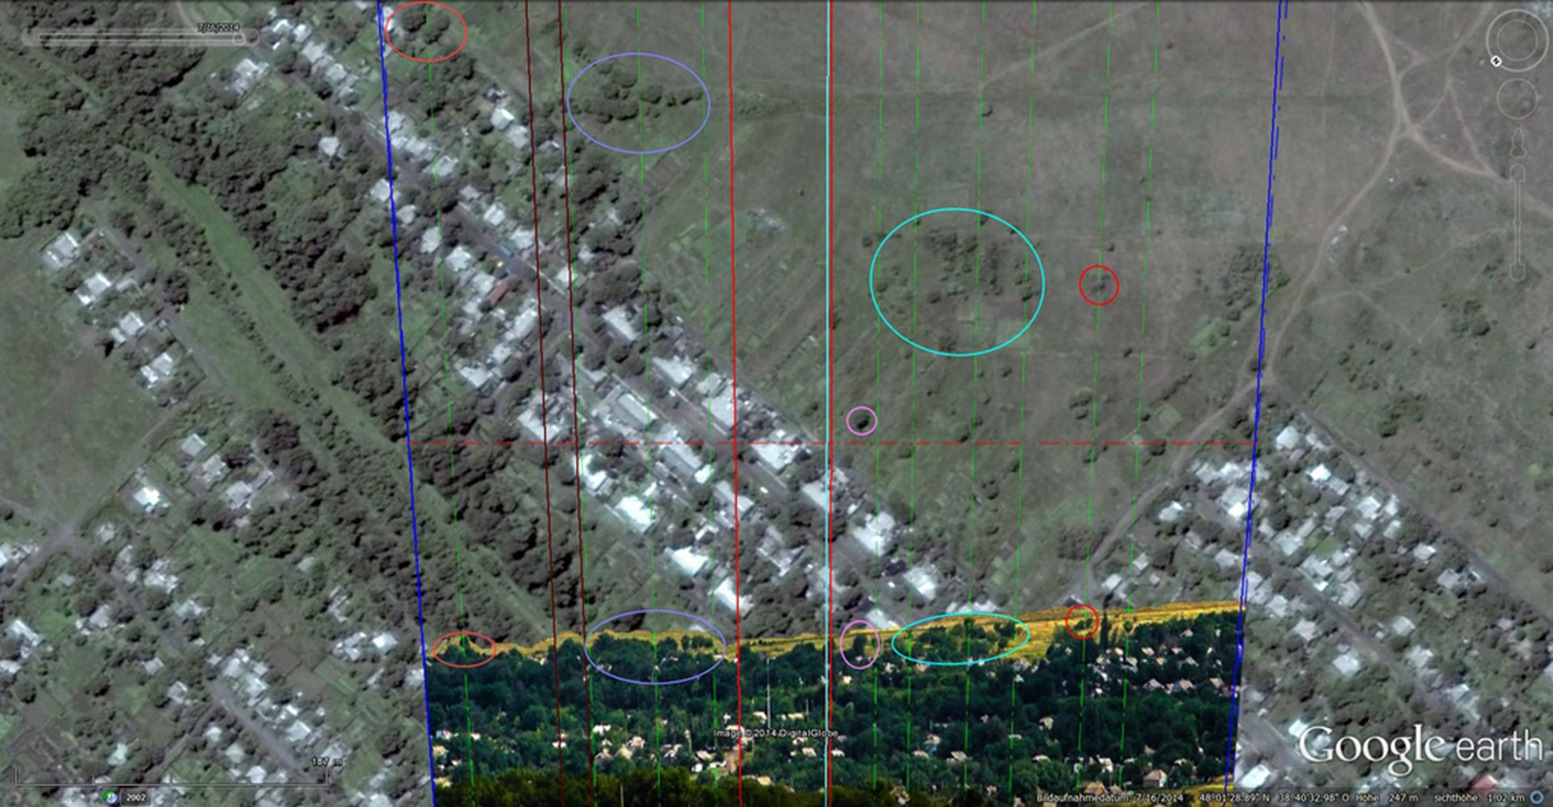 Third image with matches between the 17 July 2014 picture and the Google Earth satellite image.